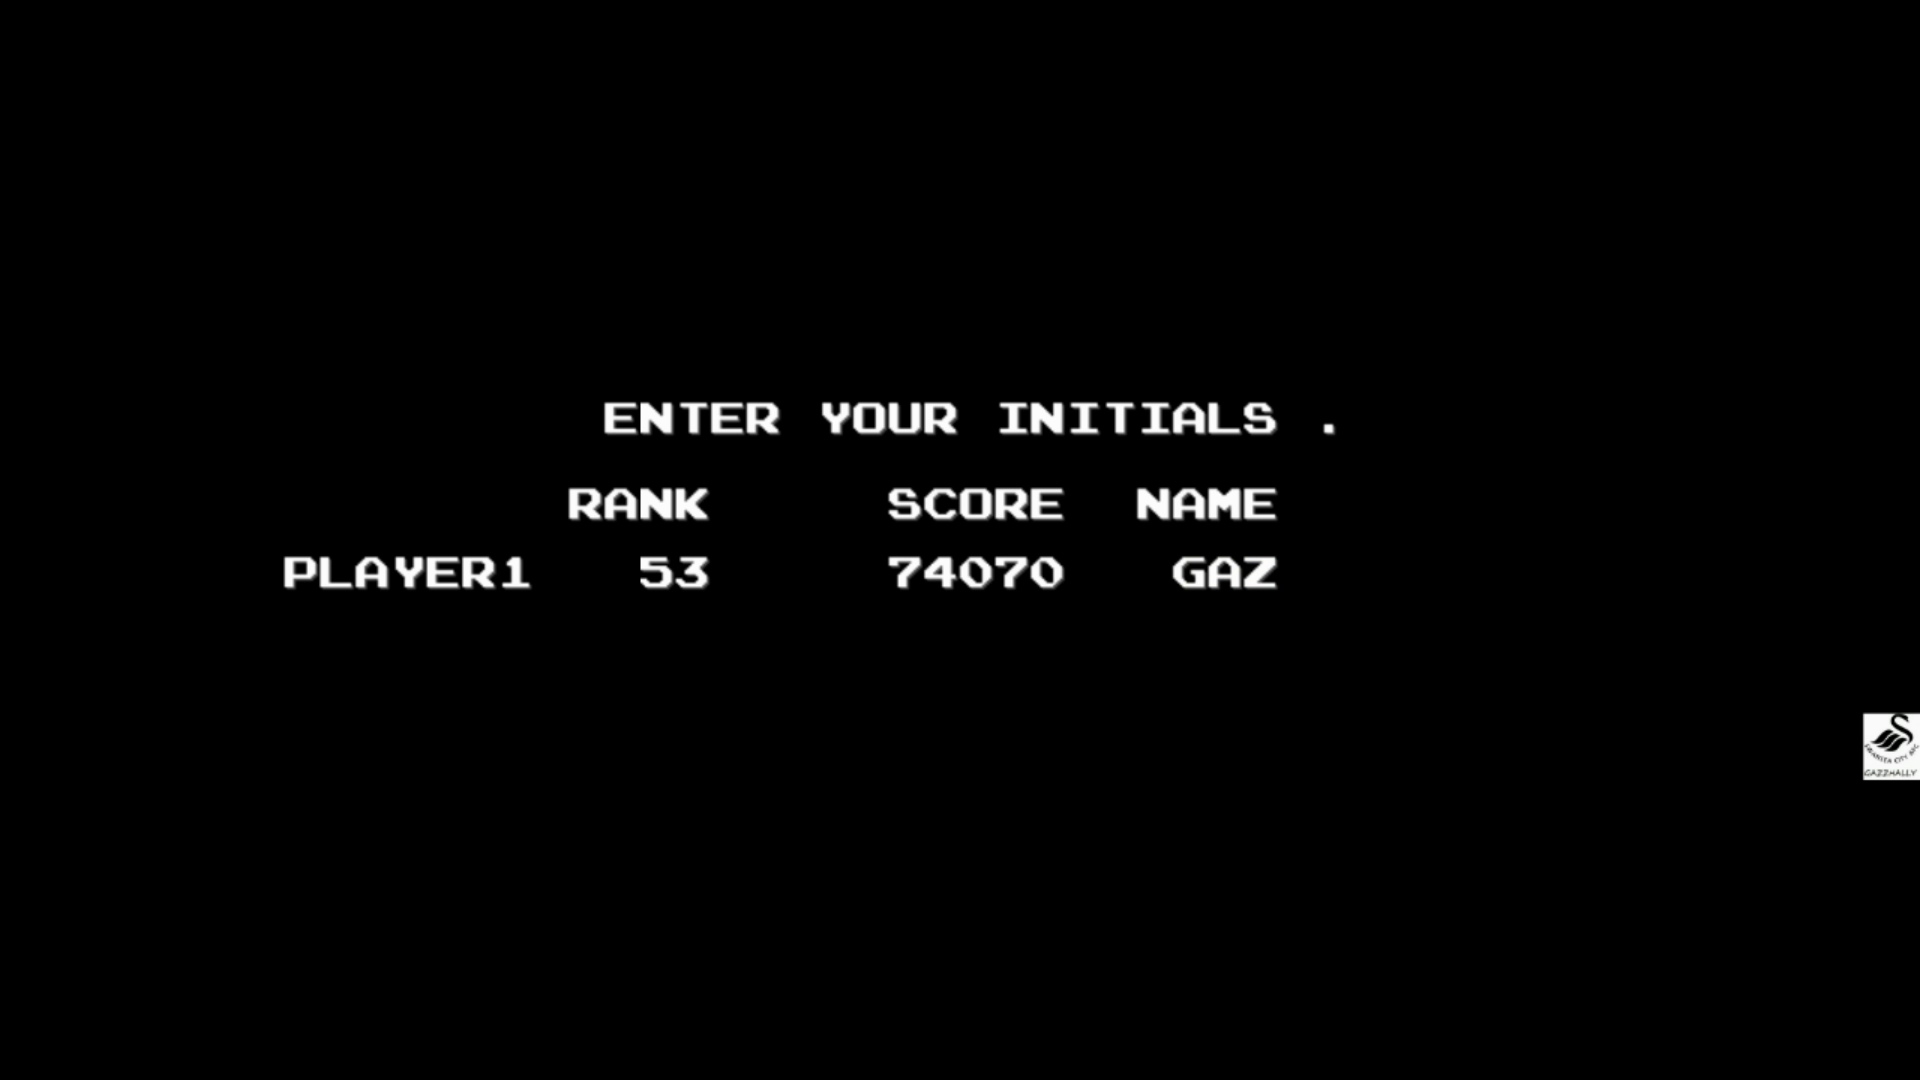 gazzhally: Ninja Warriors (Arcade Emulated / M.A.M.E.) 74,070 points on 2017-07-16 17:09:55